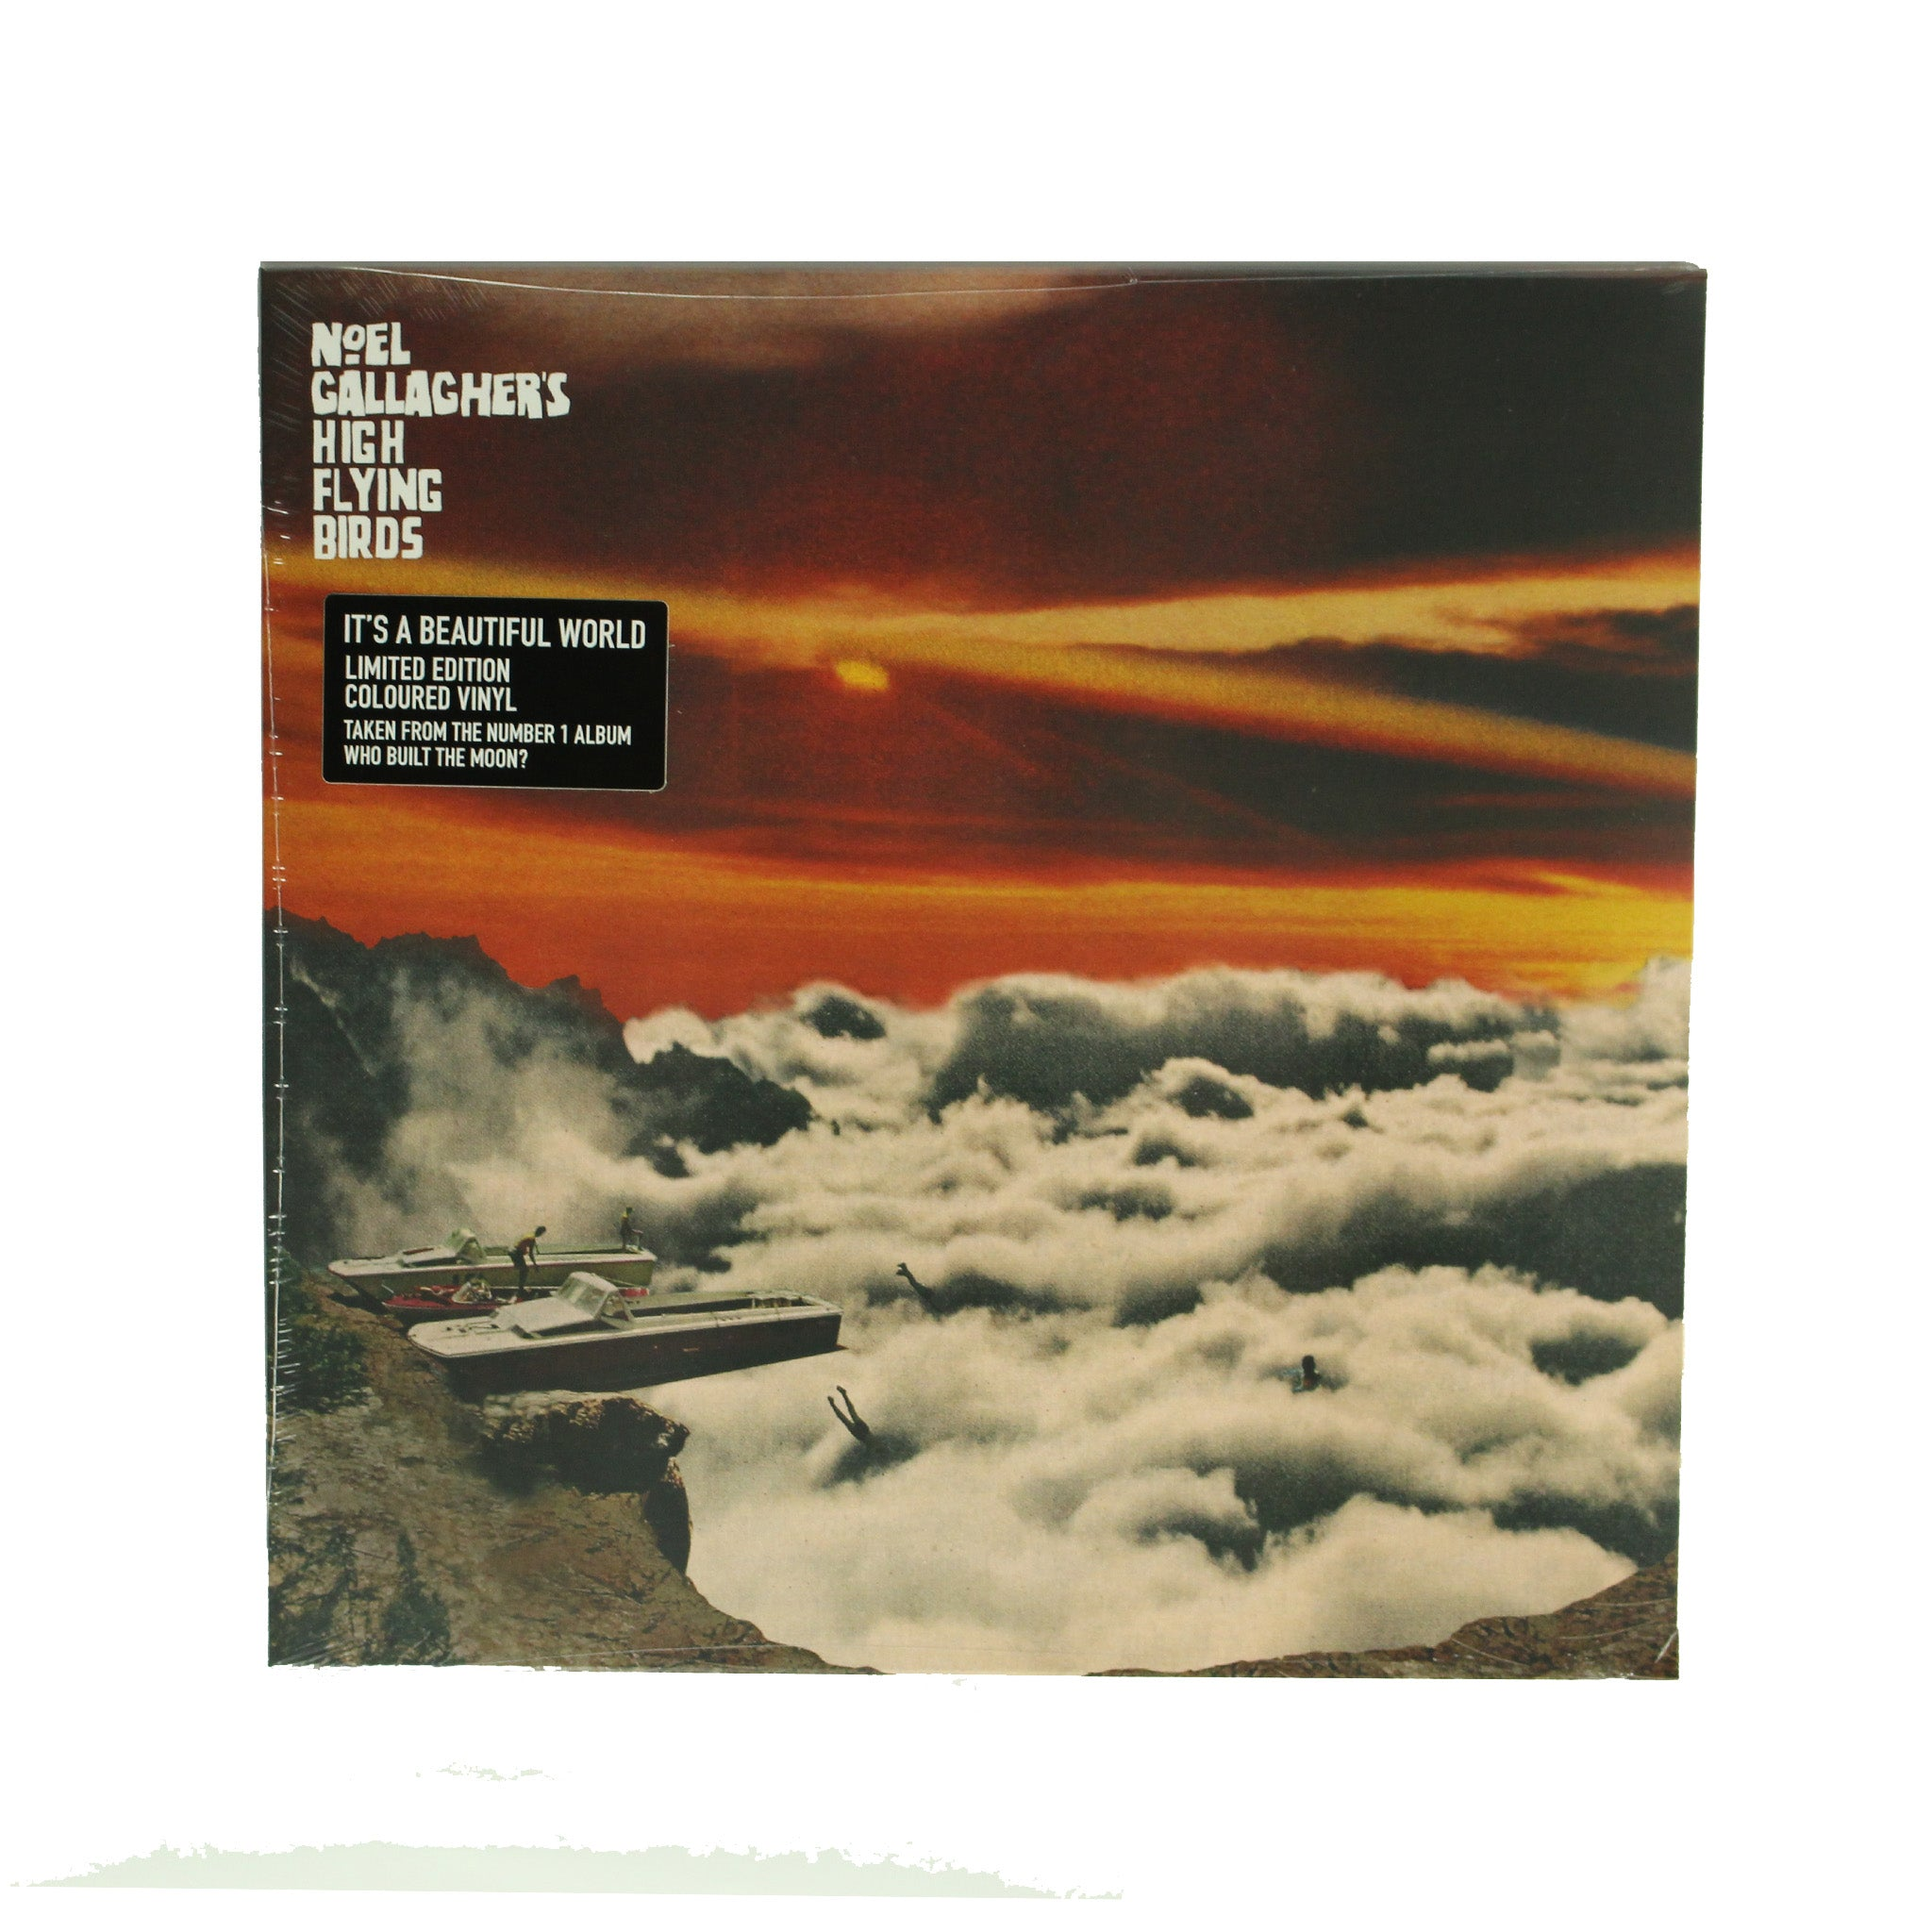 "Noel Gallagher's High Flying Birds ‎– It's A Beautiful World 12"" Colour Vinyl Record"